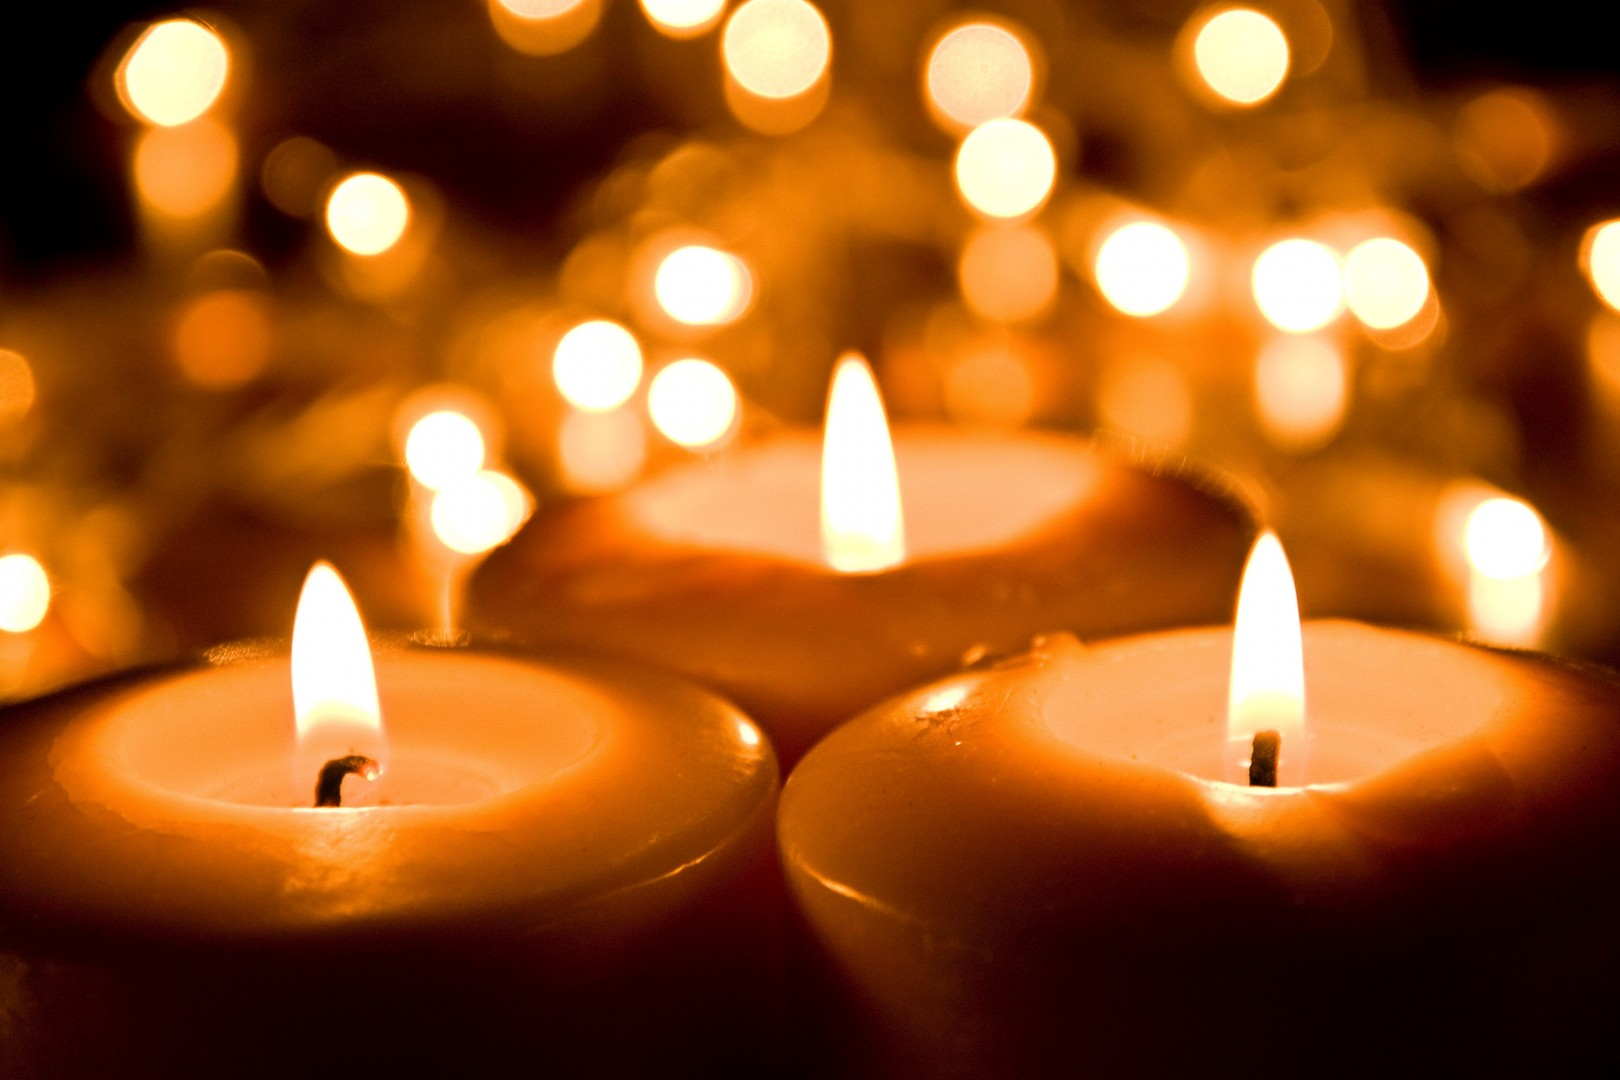 Candles-Christian-Stock-Photos